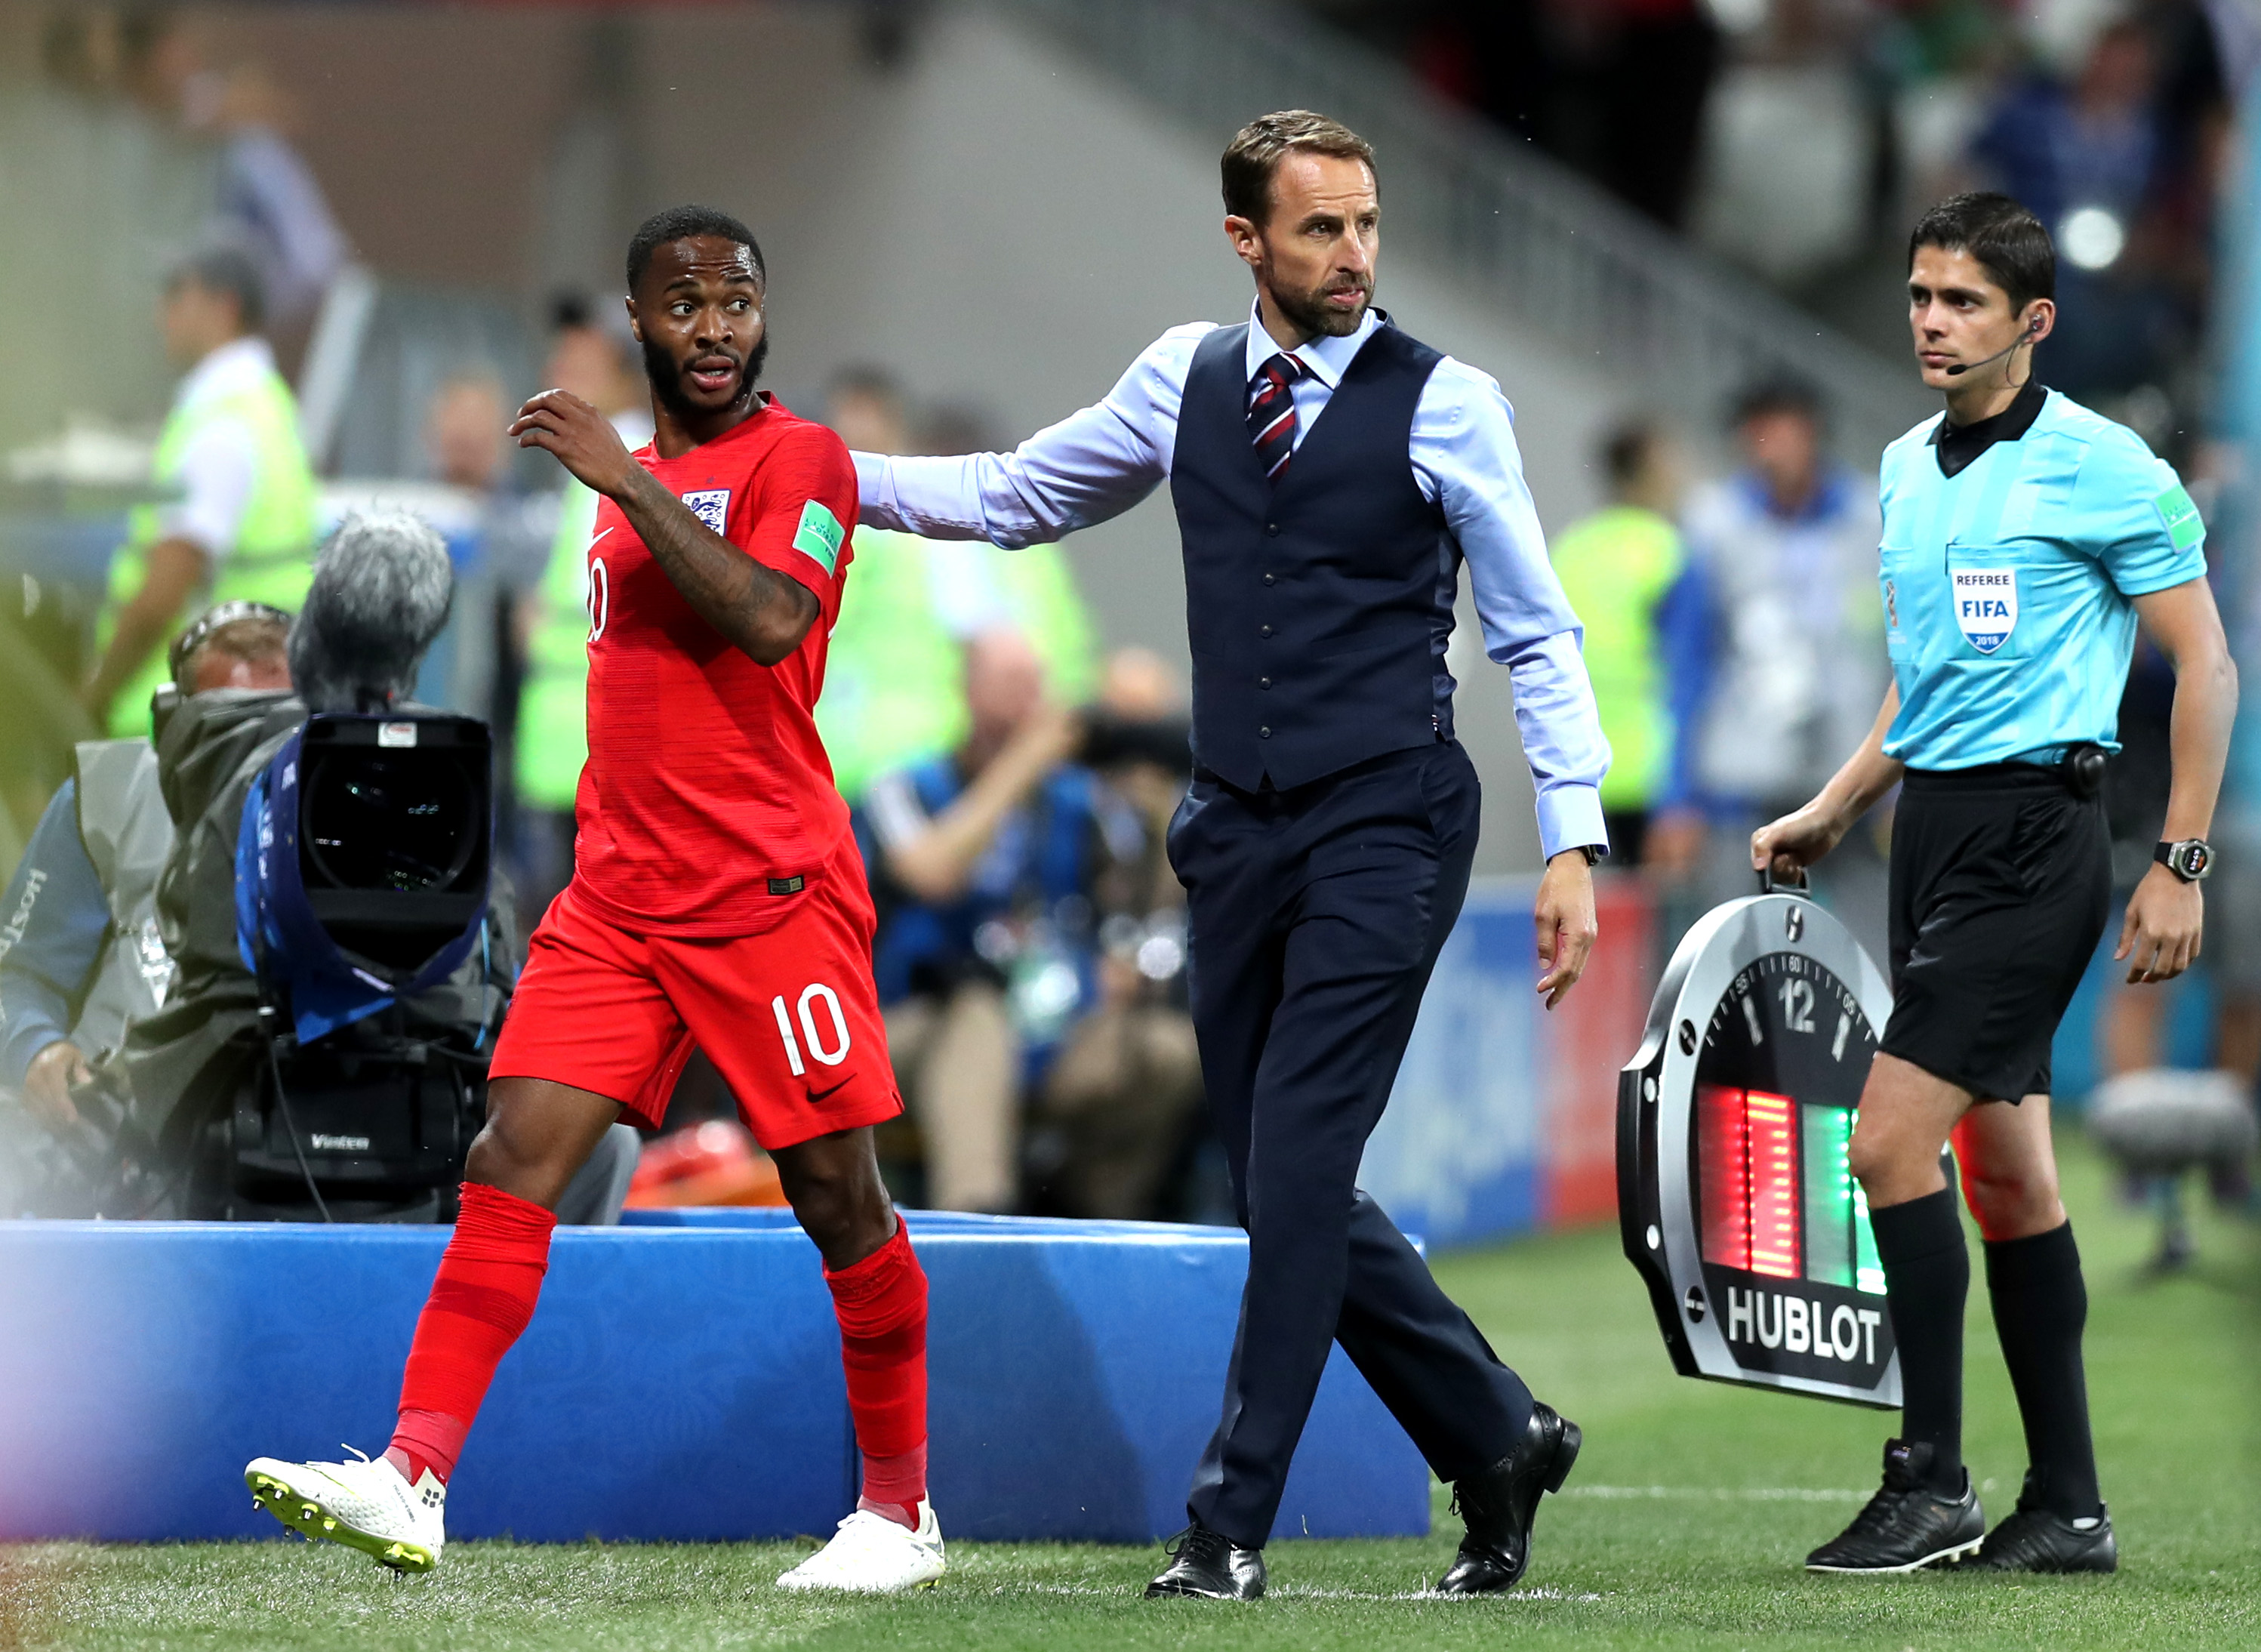 England boss Gareth Southgate makes light of dislocating shoulder jogging